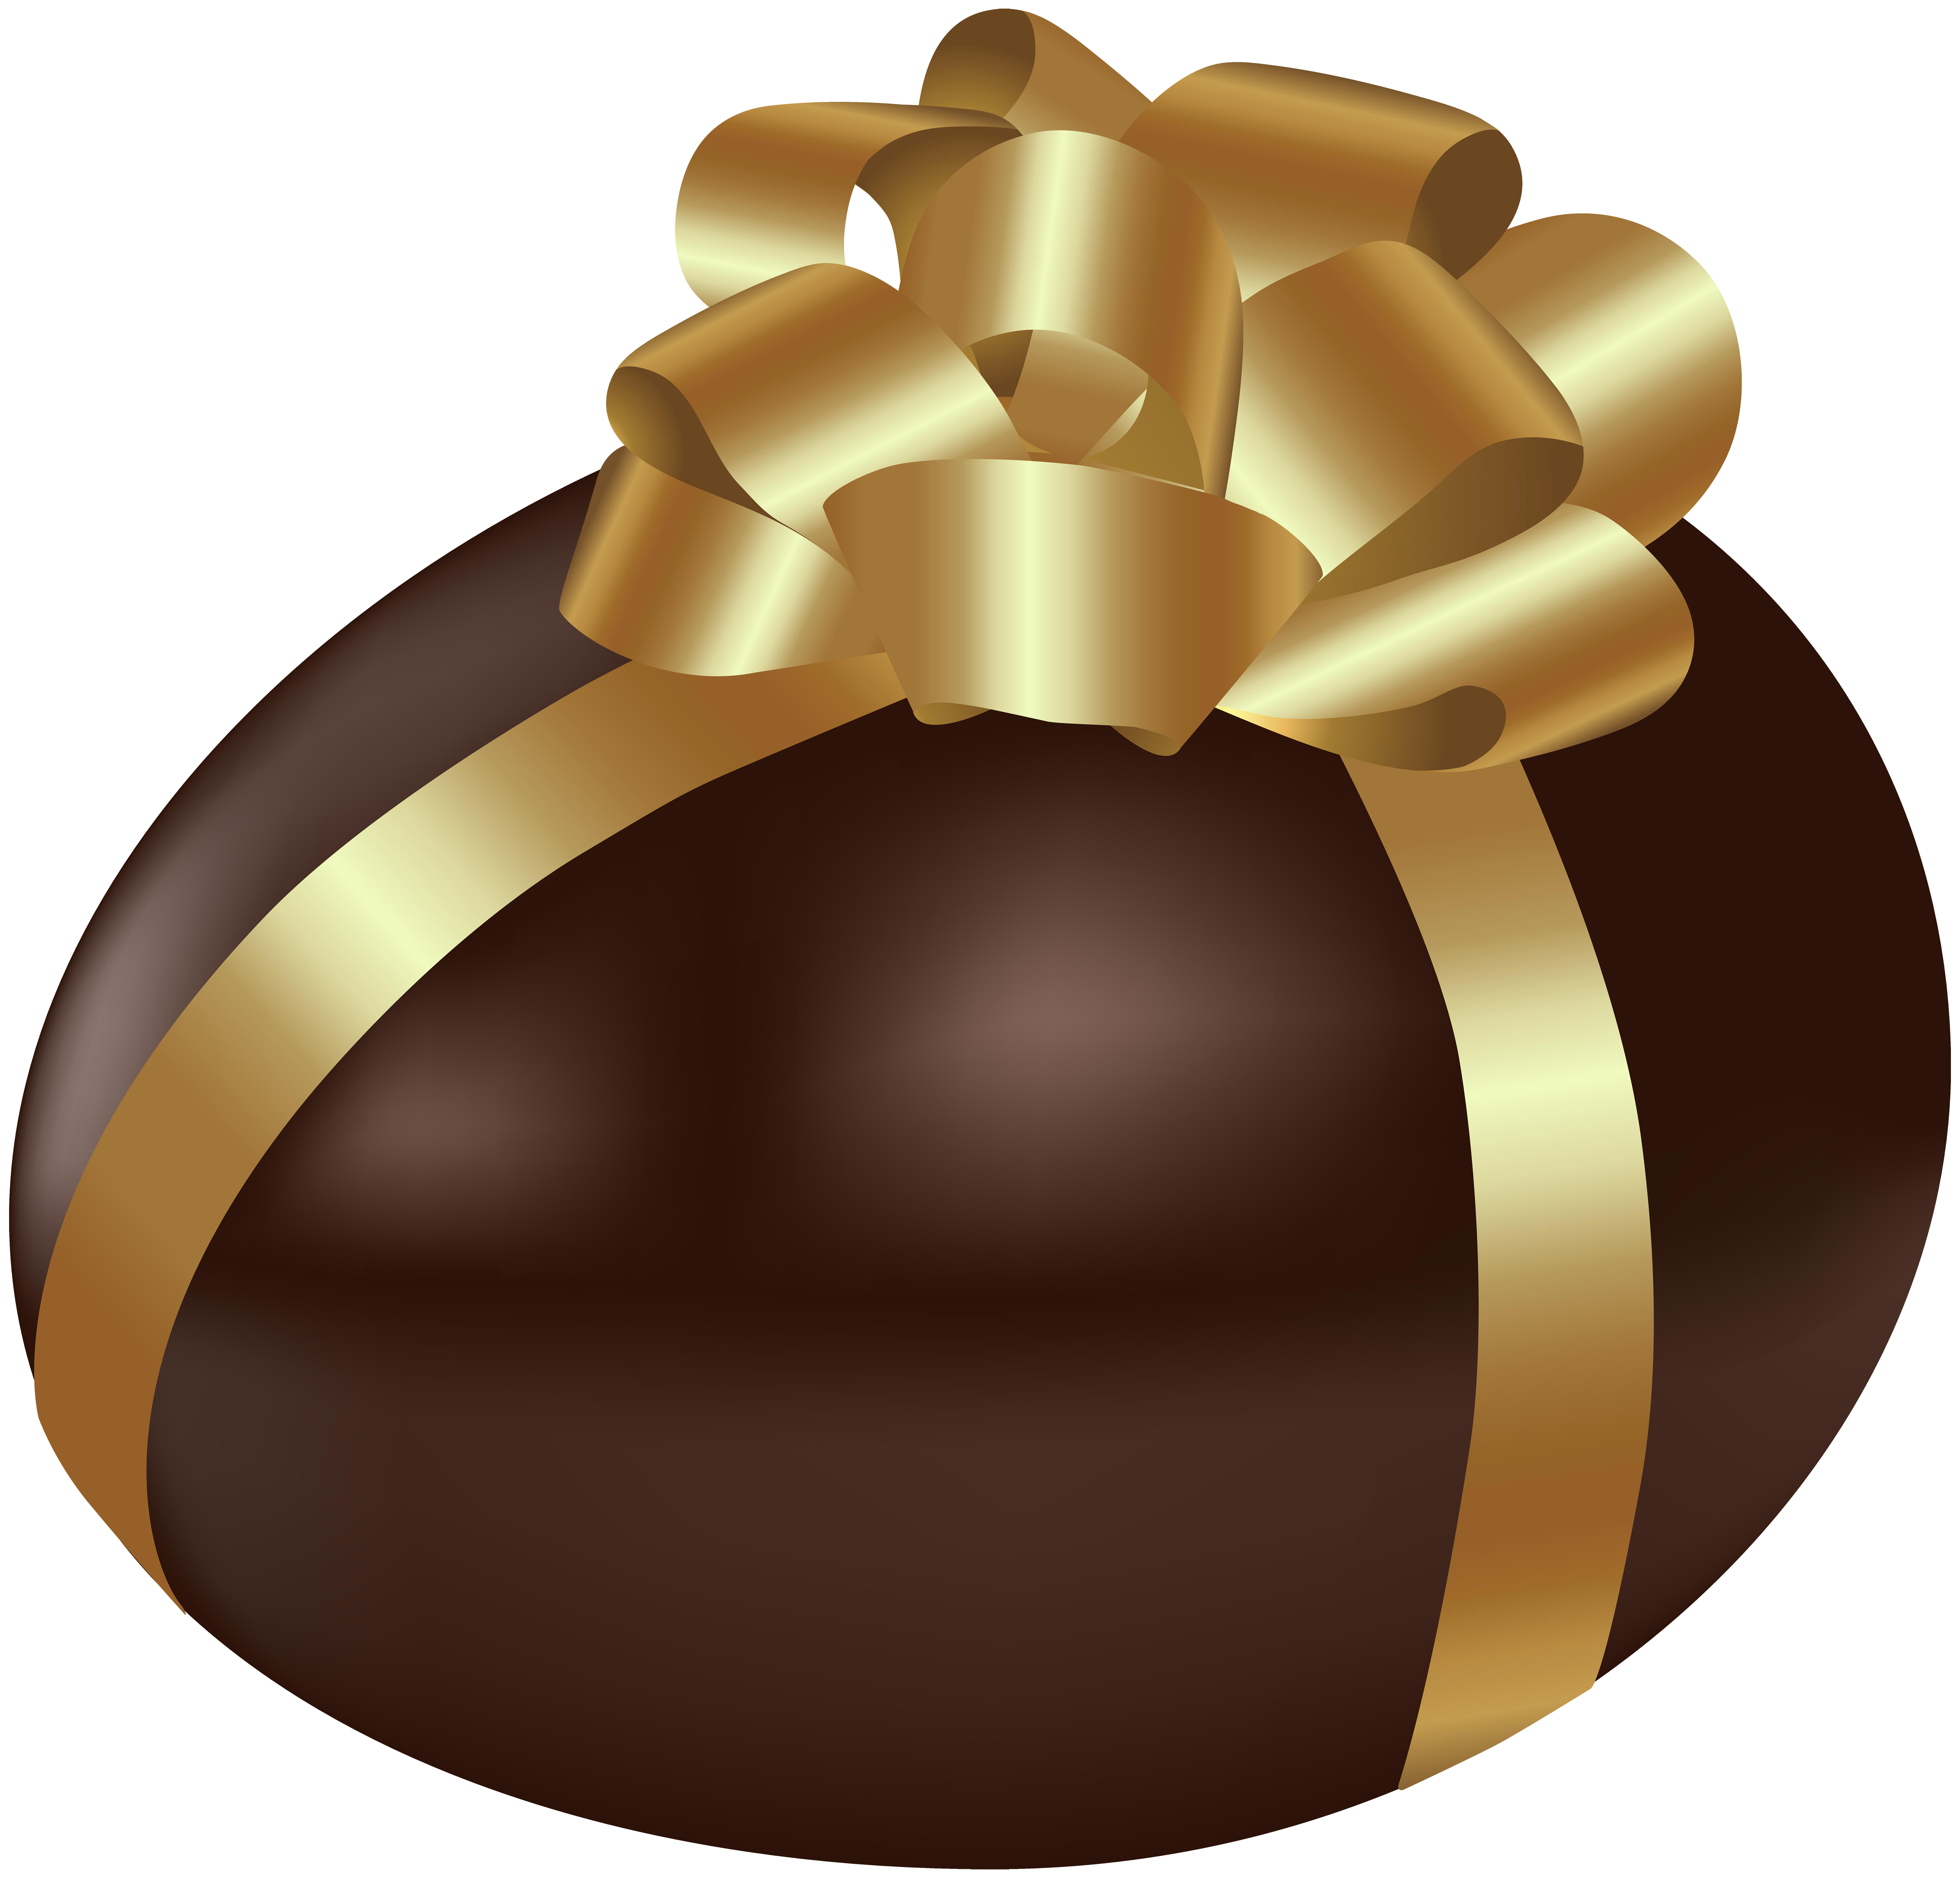 Easter chocolate clipart image Easter Chocolate Egg Transparent PNG Clip Art | Gallery ... image